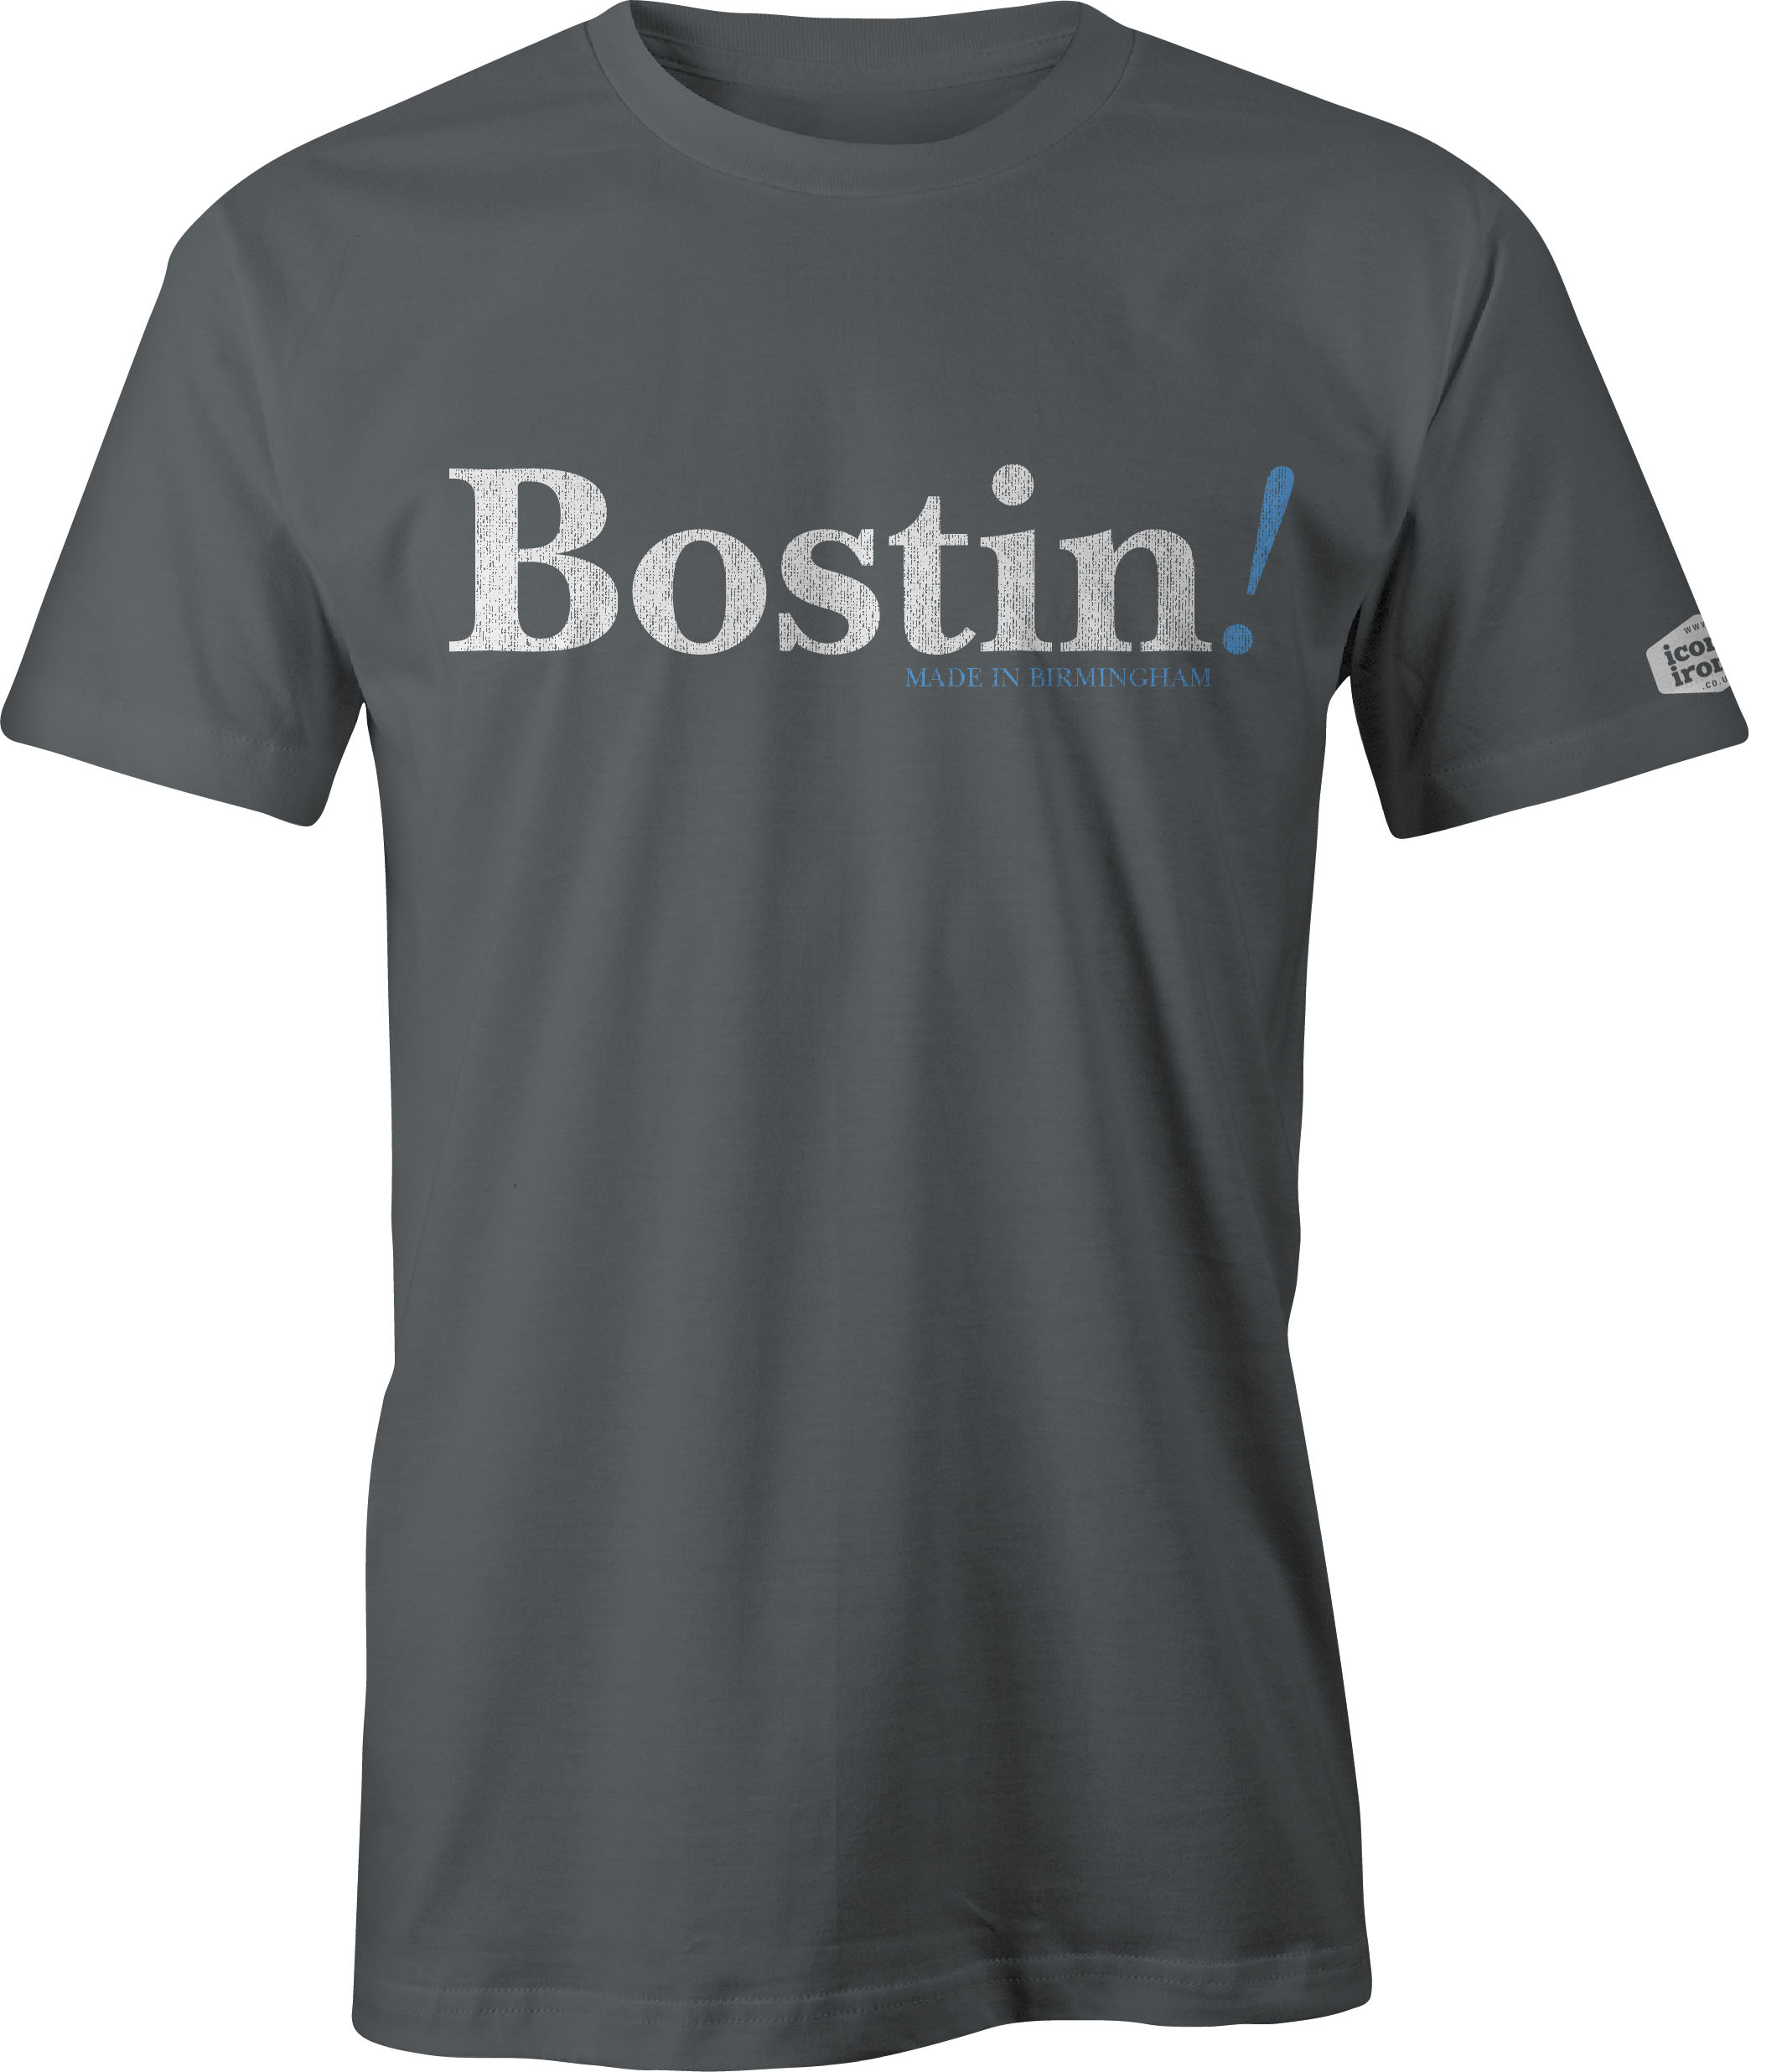 Bostin! Made In Birmingham t shirt in charcoal